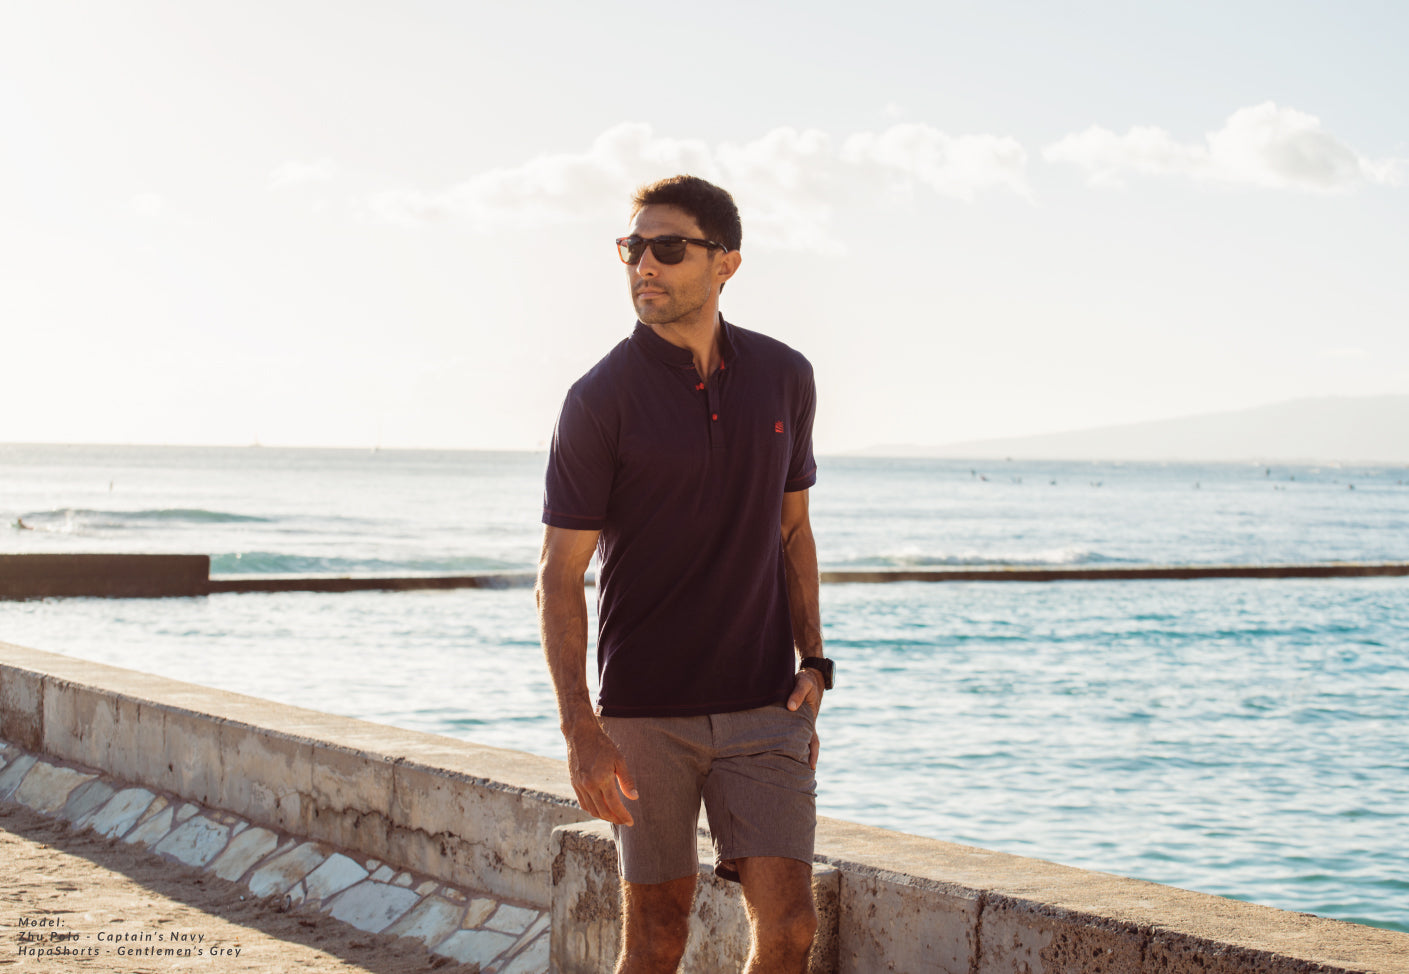 Bamboo Polo shirt Cpatains Navy with hapashorts Gentlemen's grey